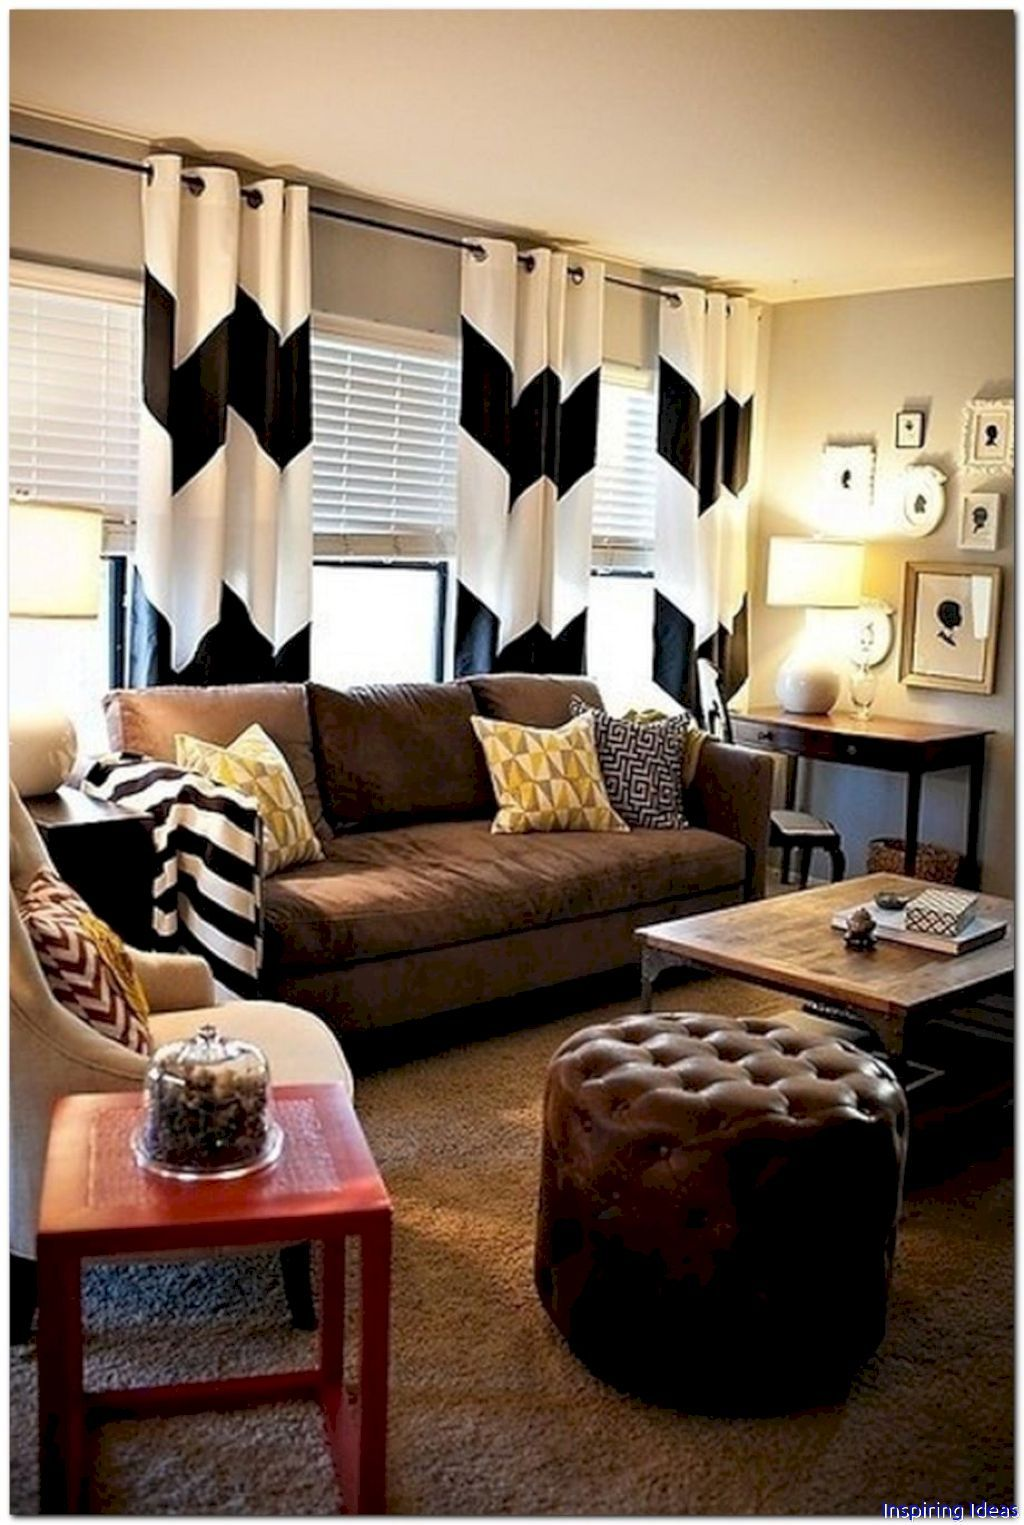 Nice 47 Great Apartment Decorating Ideas for Men ://lovelyving.com/ & 47 Great Apartment Decorating Ideas for Men | Apartments Apartments ...